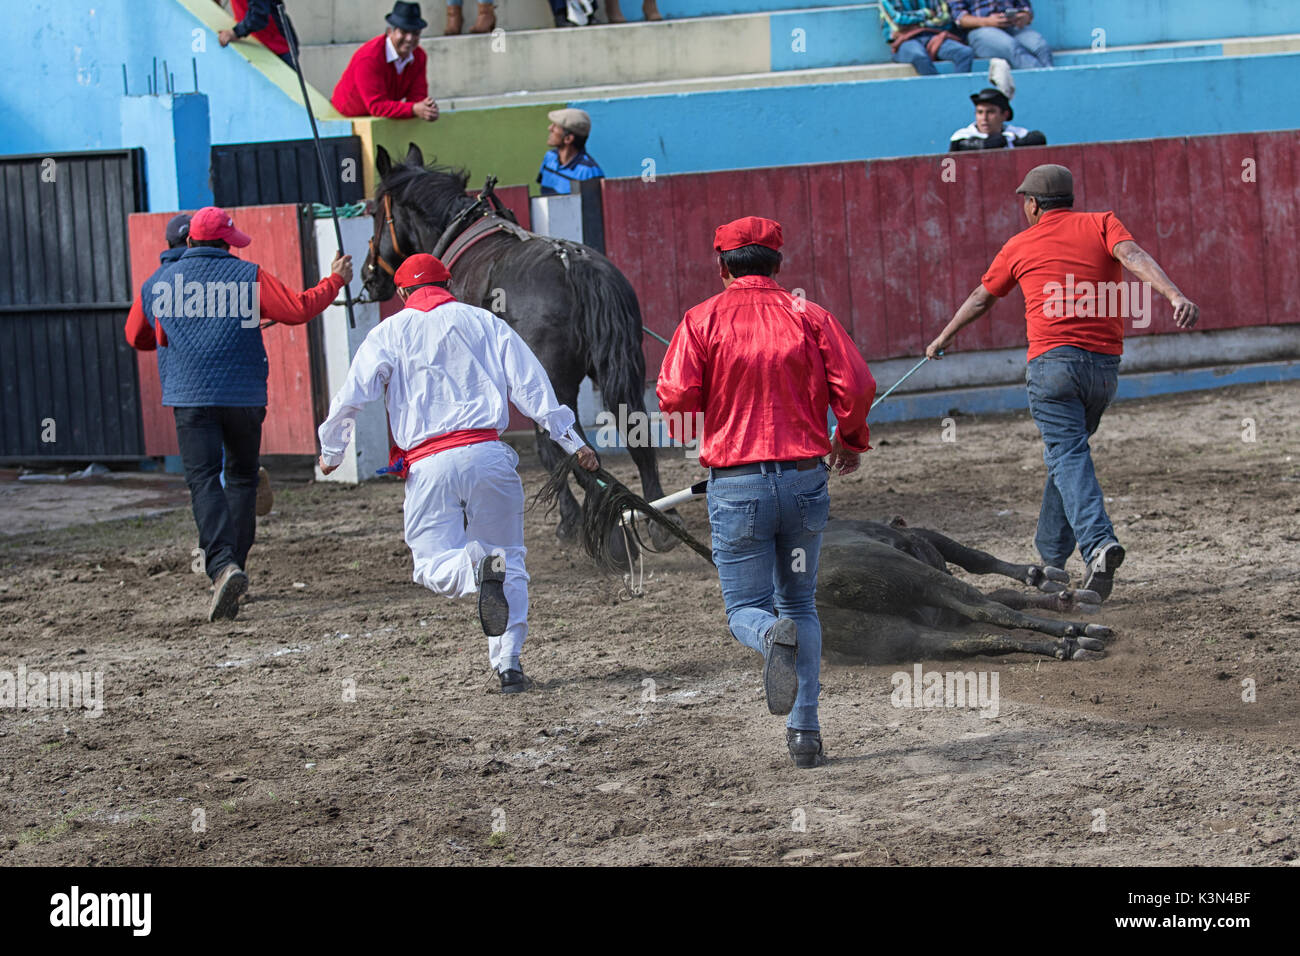 June 18, 2017 Pujili, Ecuador: the sacrificed bull is pulled out from the ring by horse after the ritual Stock Photo